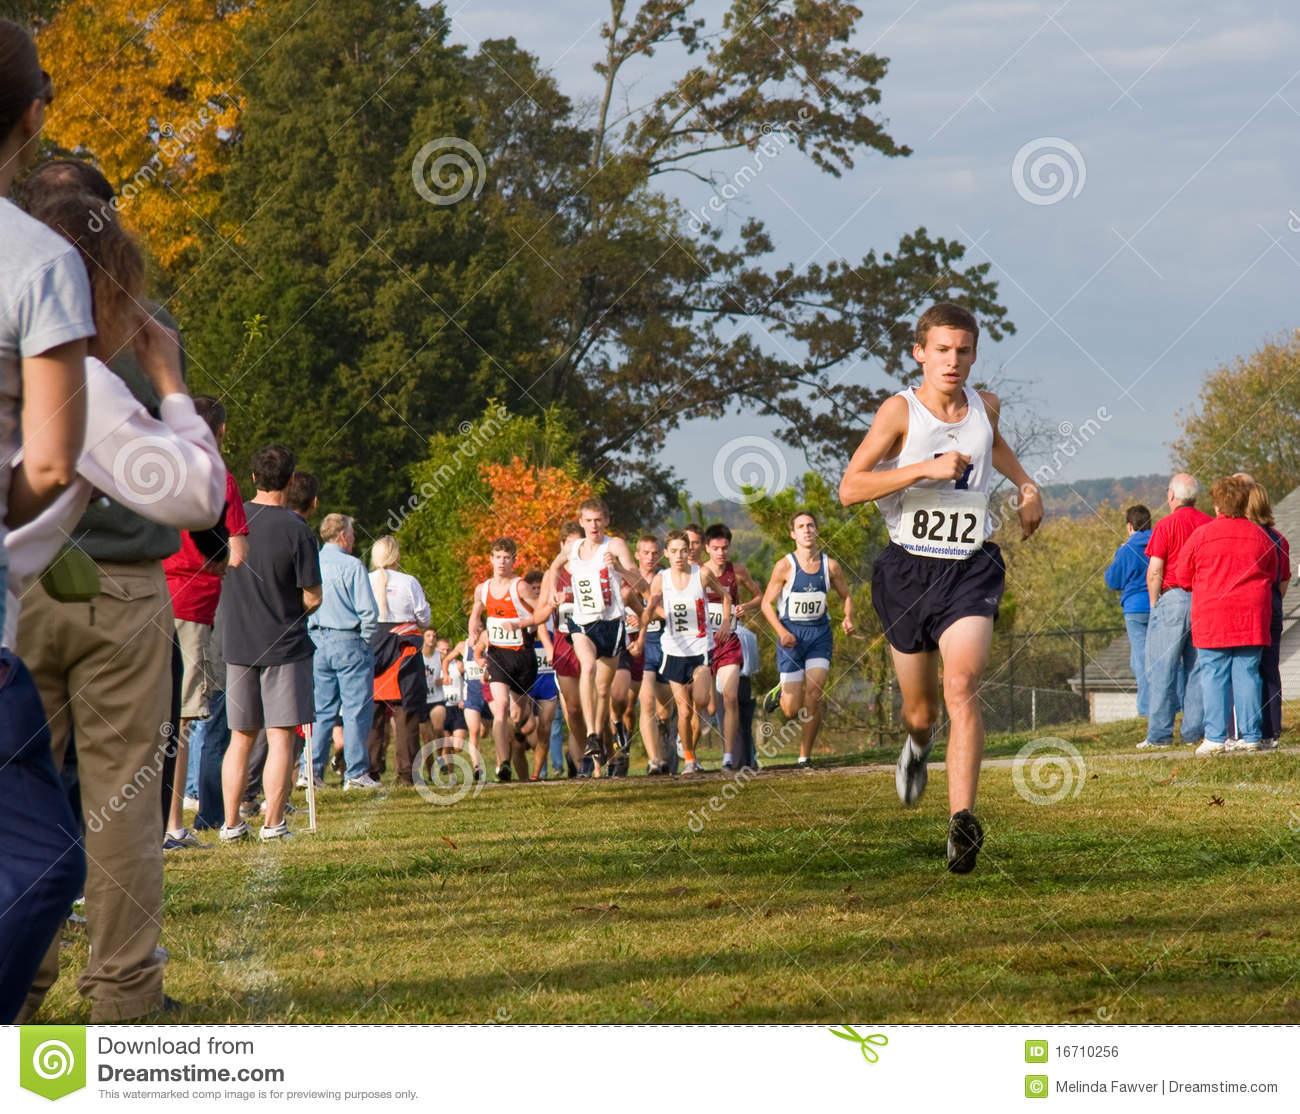 "college essay cross country running How do you write college essays and make them really strong and unique   running cross country and i really enjoyed it"" will not grab anyone's attention."